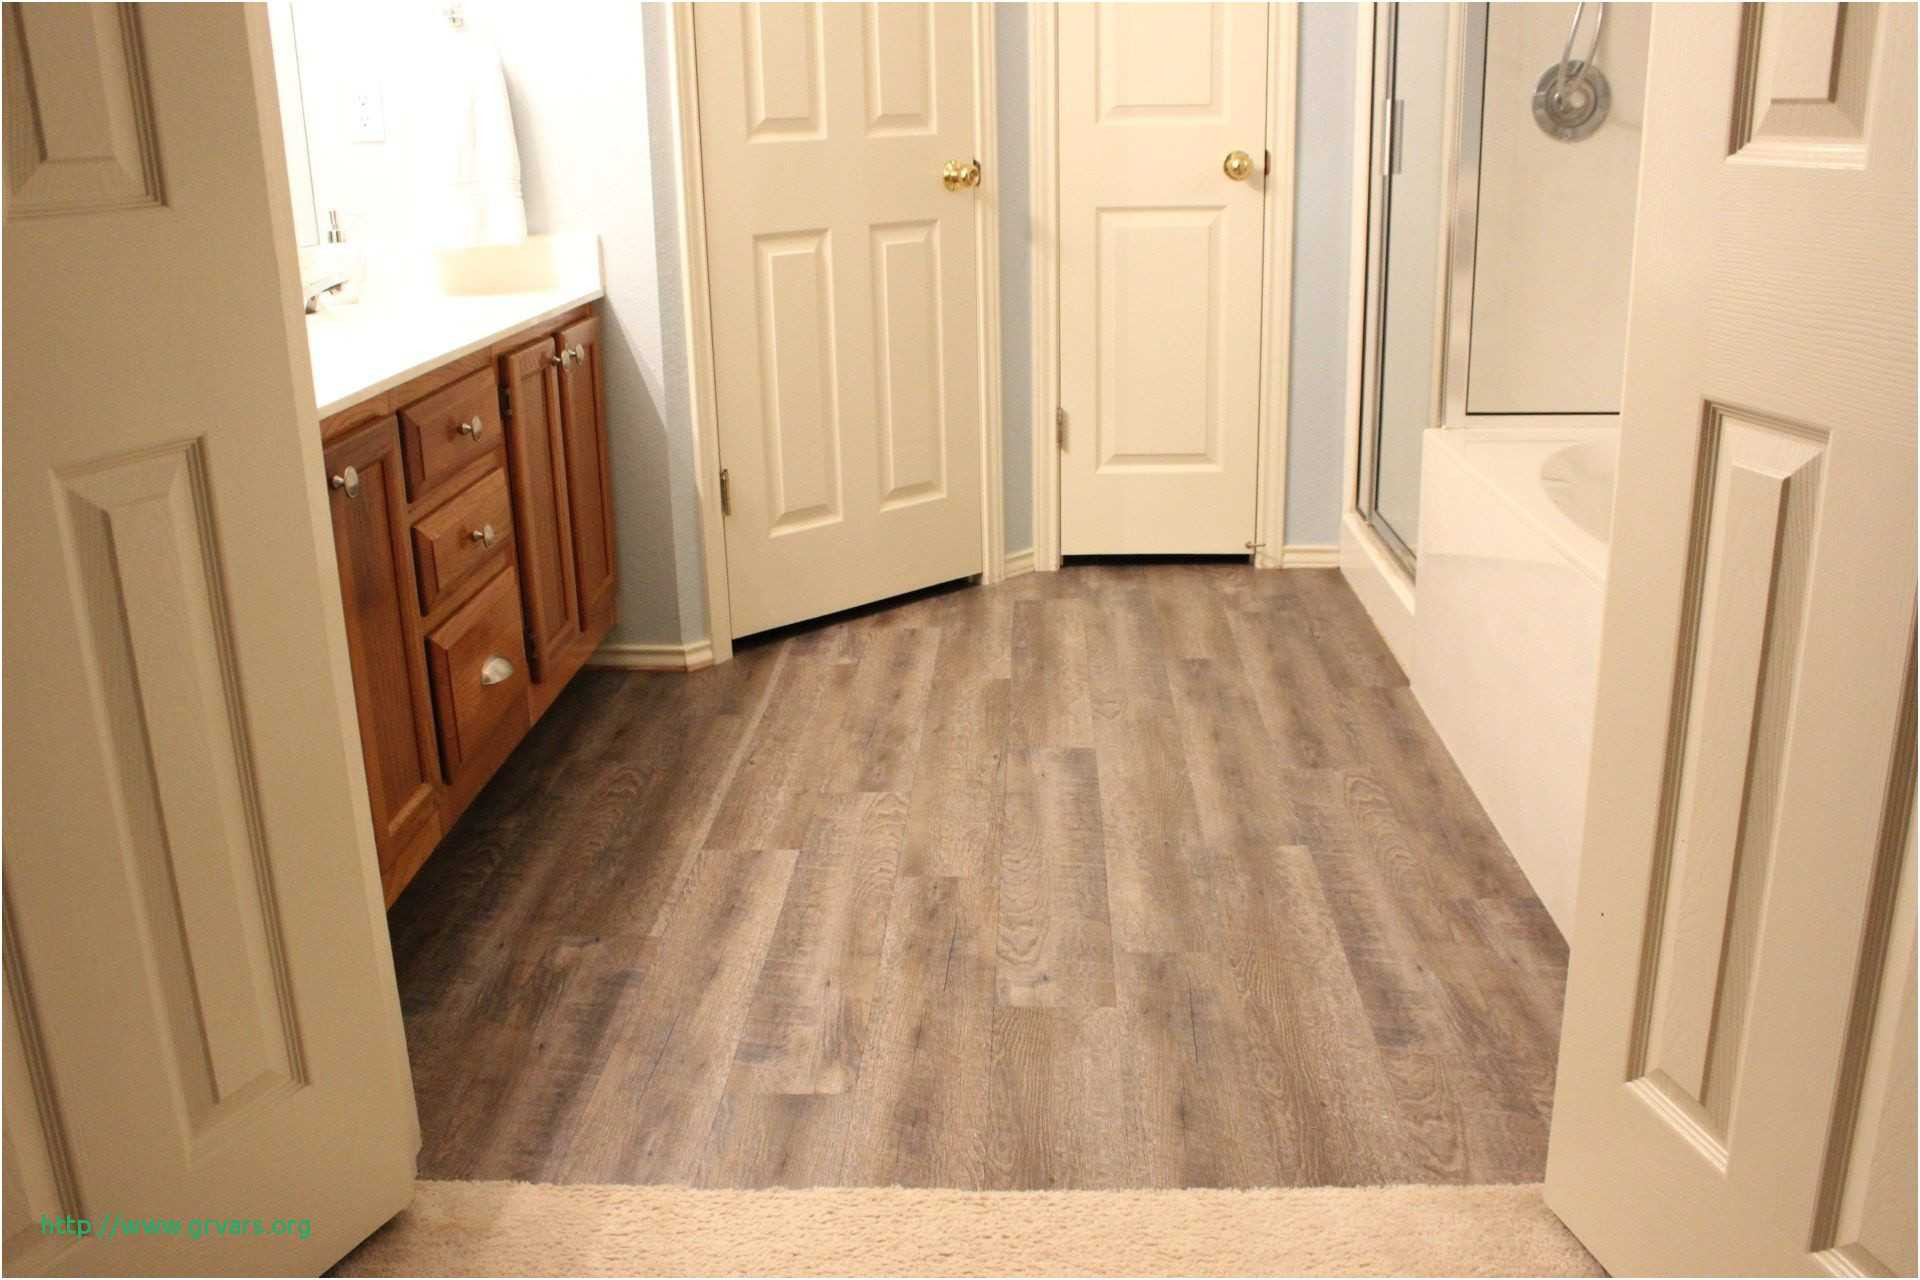 rustic hardwood flooring for sale of 22 a‰lagant what can i clean hardwood floors with ideas blog regarding flooring near me flooring sale near me stock 0d grace place barnegat nj flooring near me